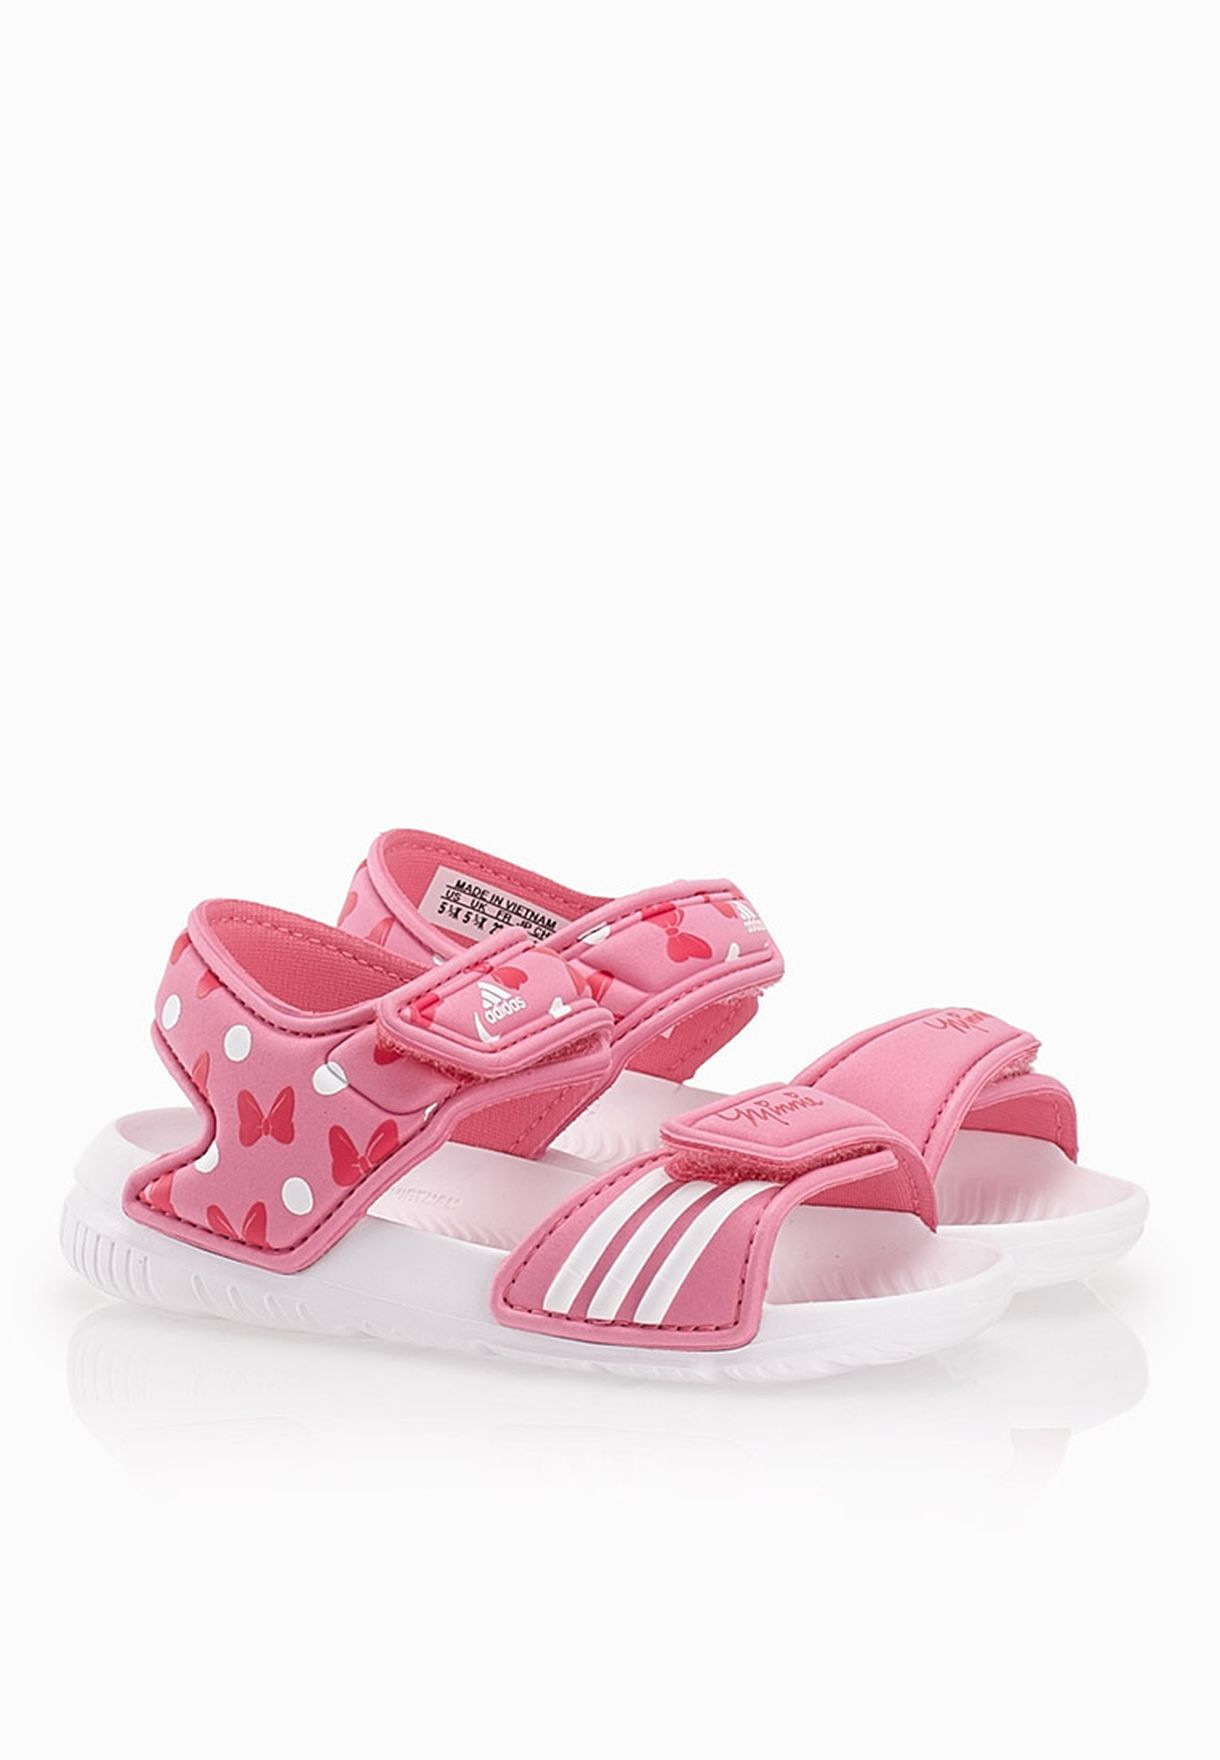 374718e3db1b6d Shop adidas pink Disney Akwah 9 Infant B40820 for Kids in Qatar -  AD476SH86PLH